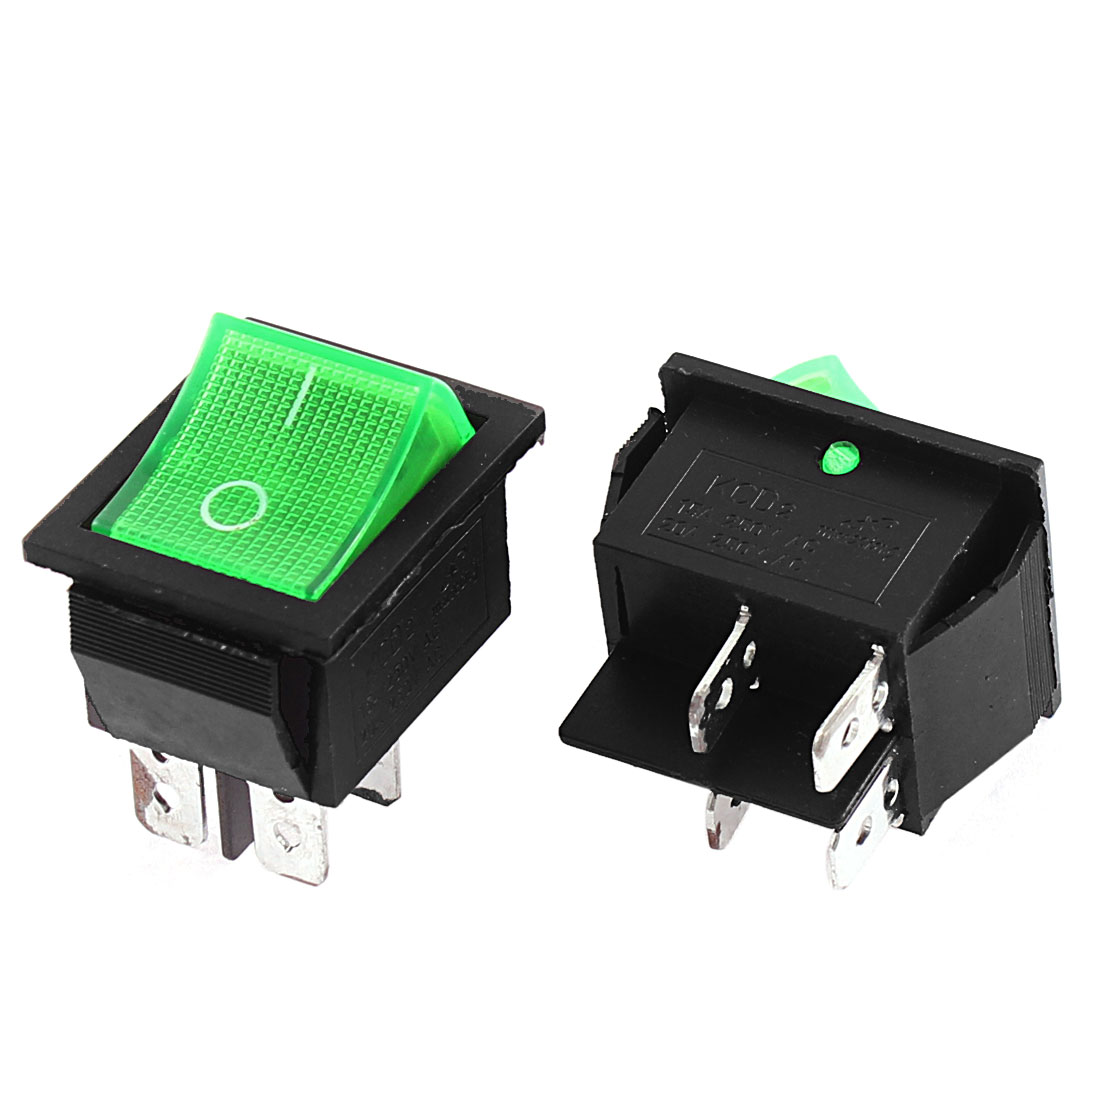 AC 250V 15A 20A Green Light Illuminated DPST ON-OFF Rocker Toggle Switch 2Pcs